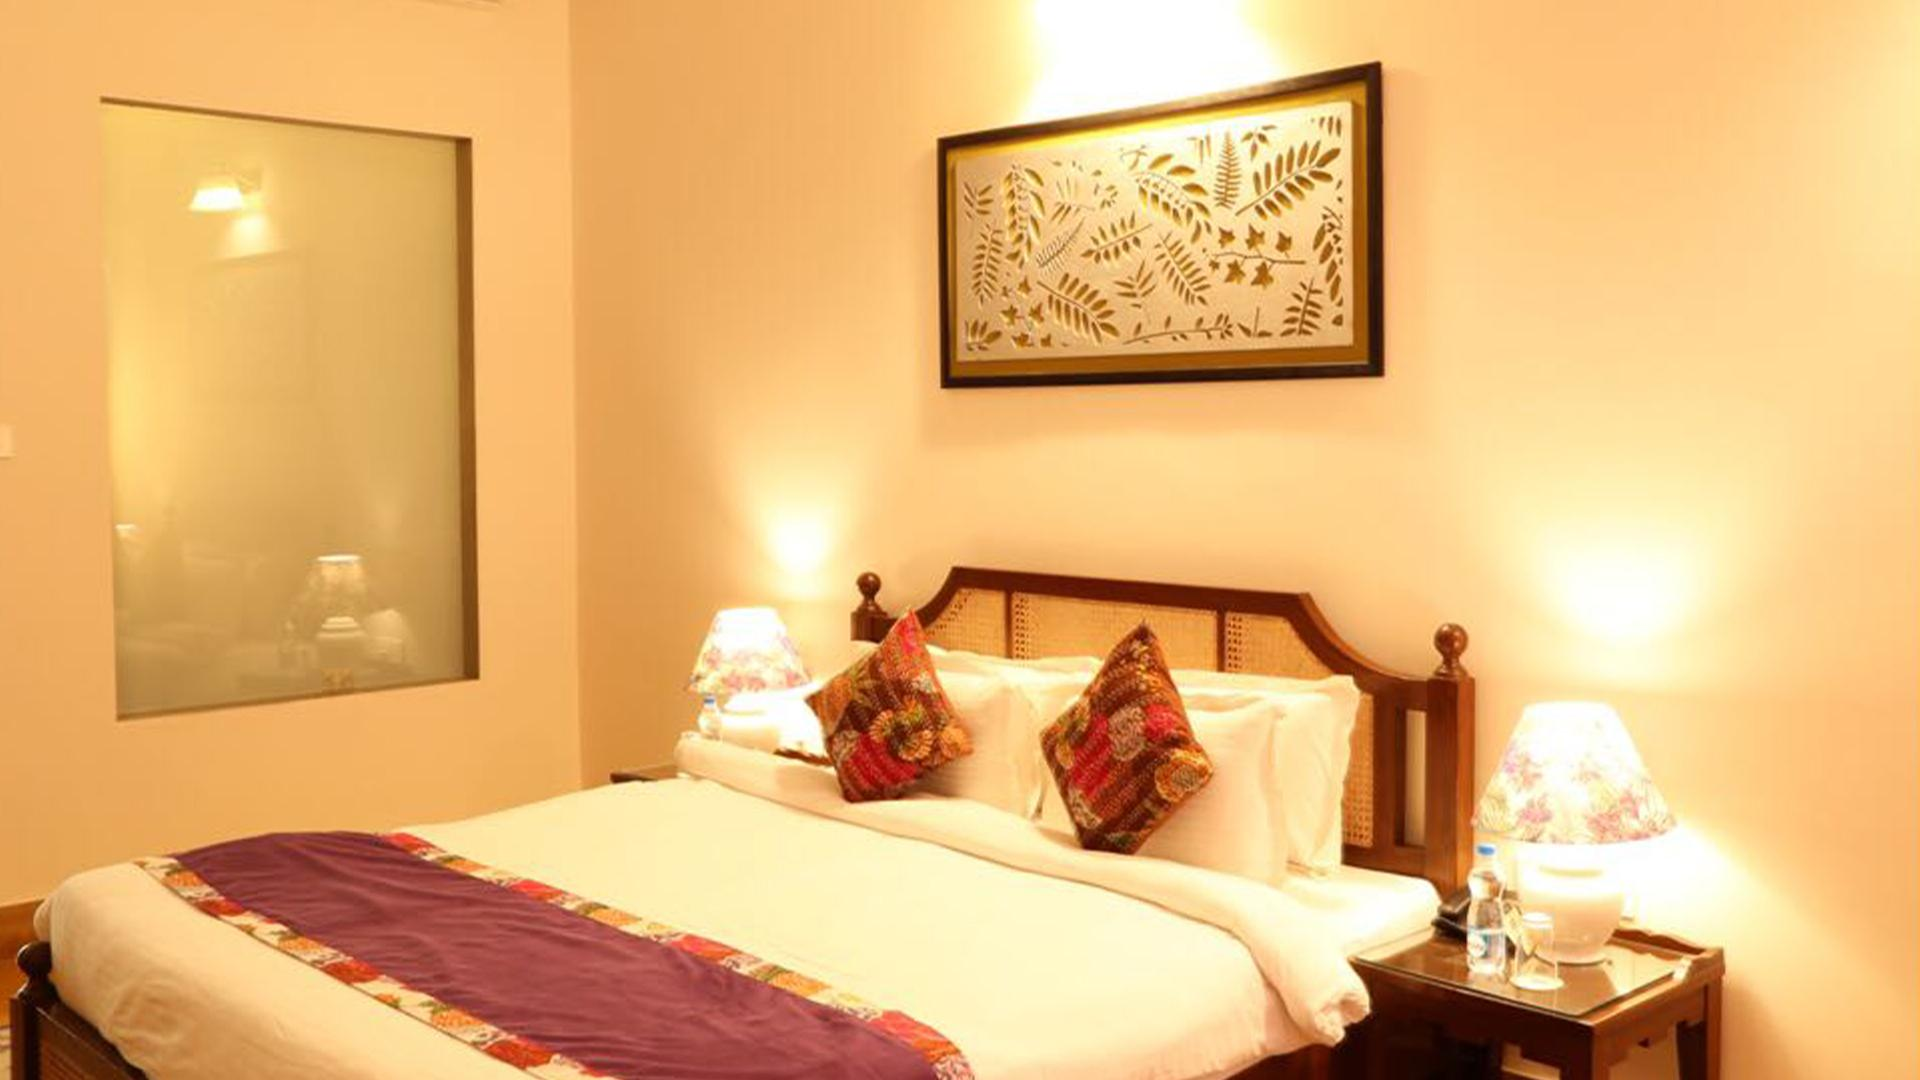 Standard Hideaway Room image 1 at Tree of Life Vantara Resort by Udaipur, Rajasthan, India